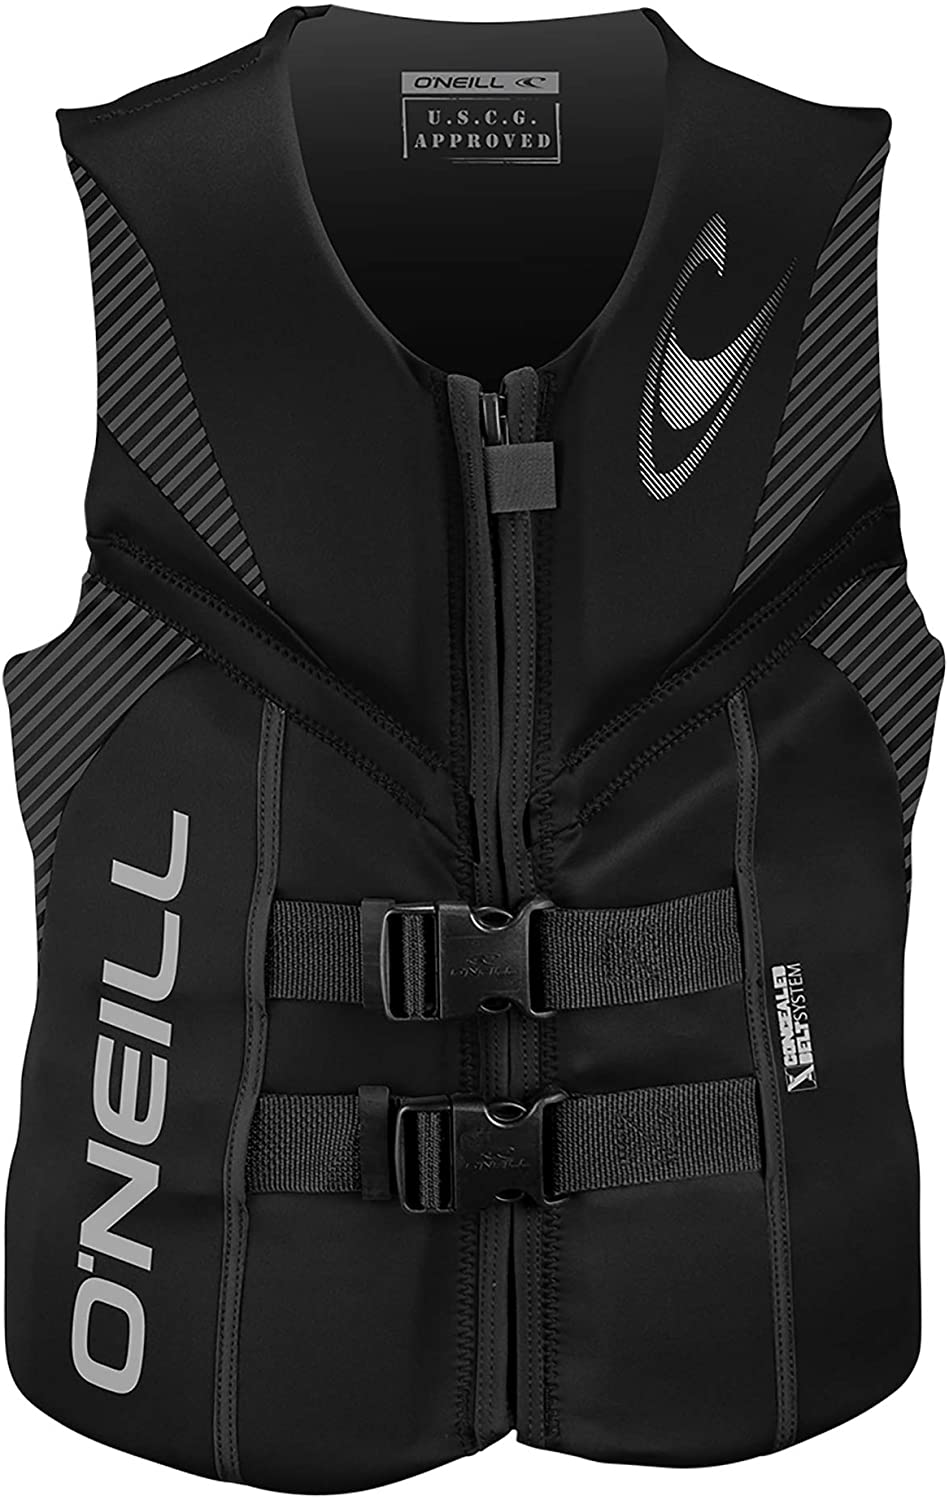 O'Neill Men's Reactor USCG Life Vest: Sports & Outdoors